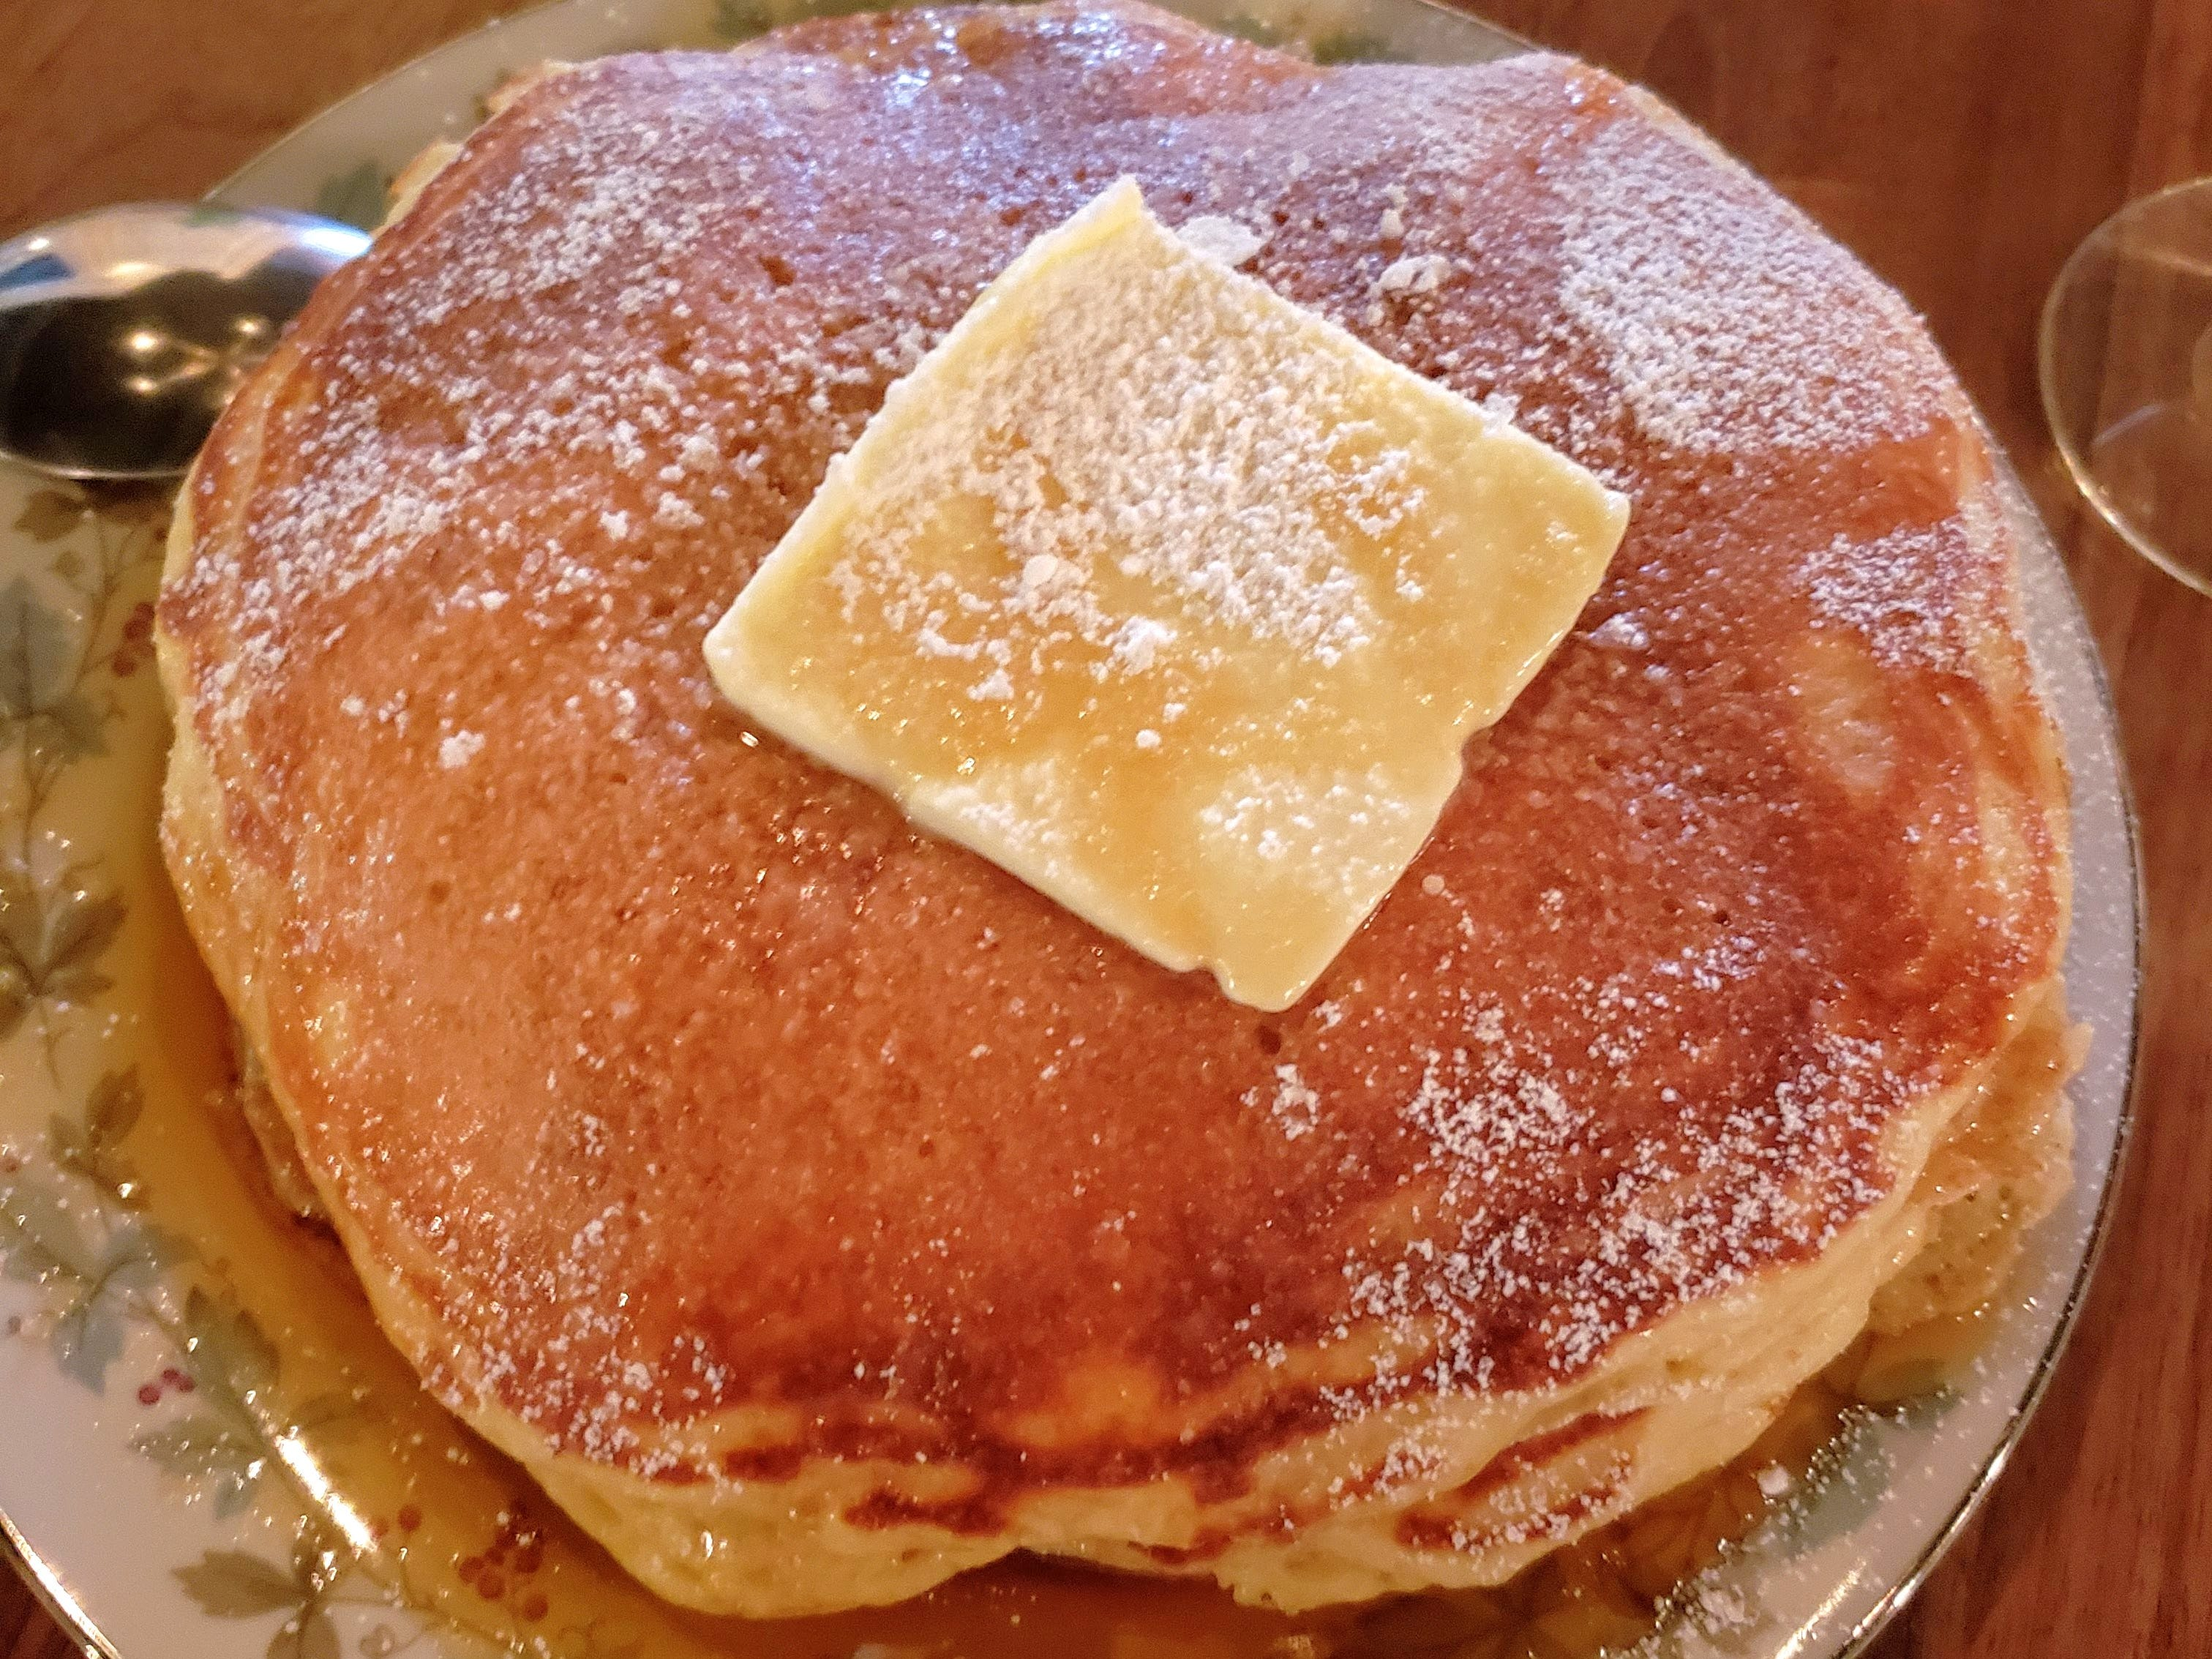 Extra fluffy, face-sized pancakes are served with smoked maple syrup during brunch at Lady of the House in Corktown.